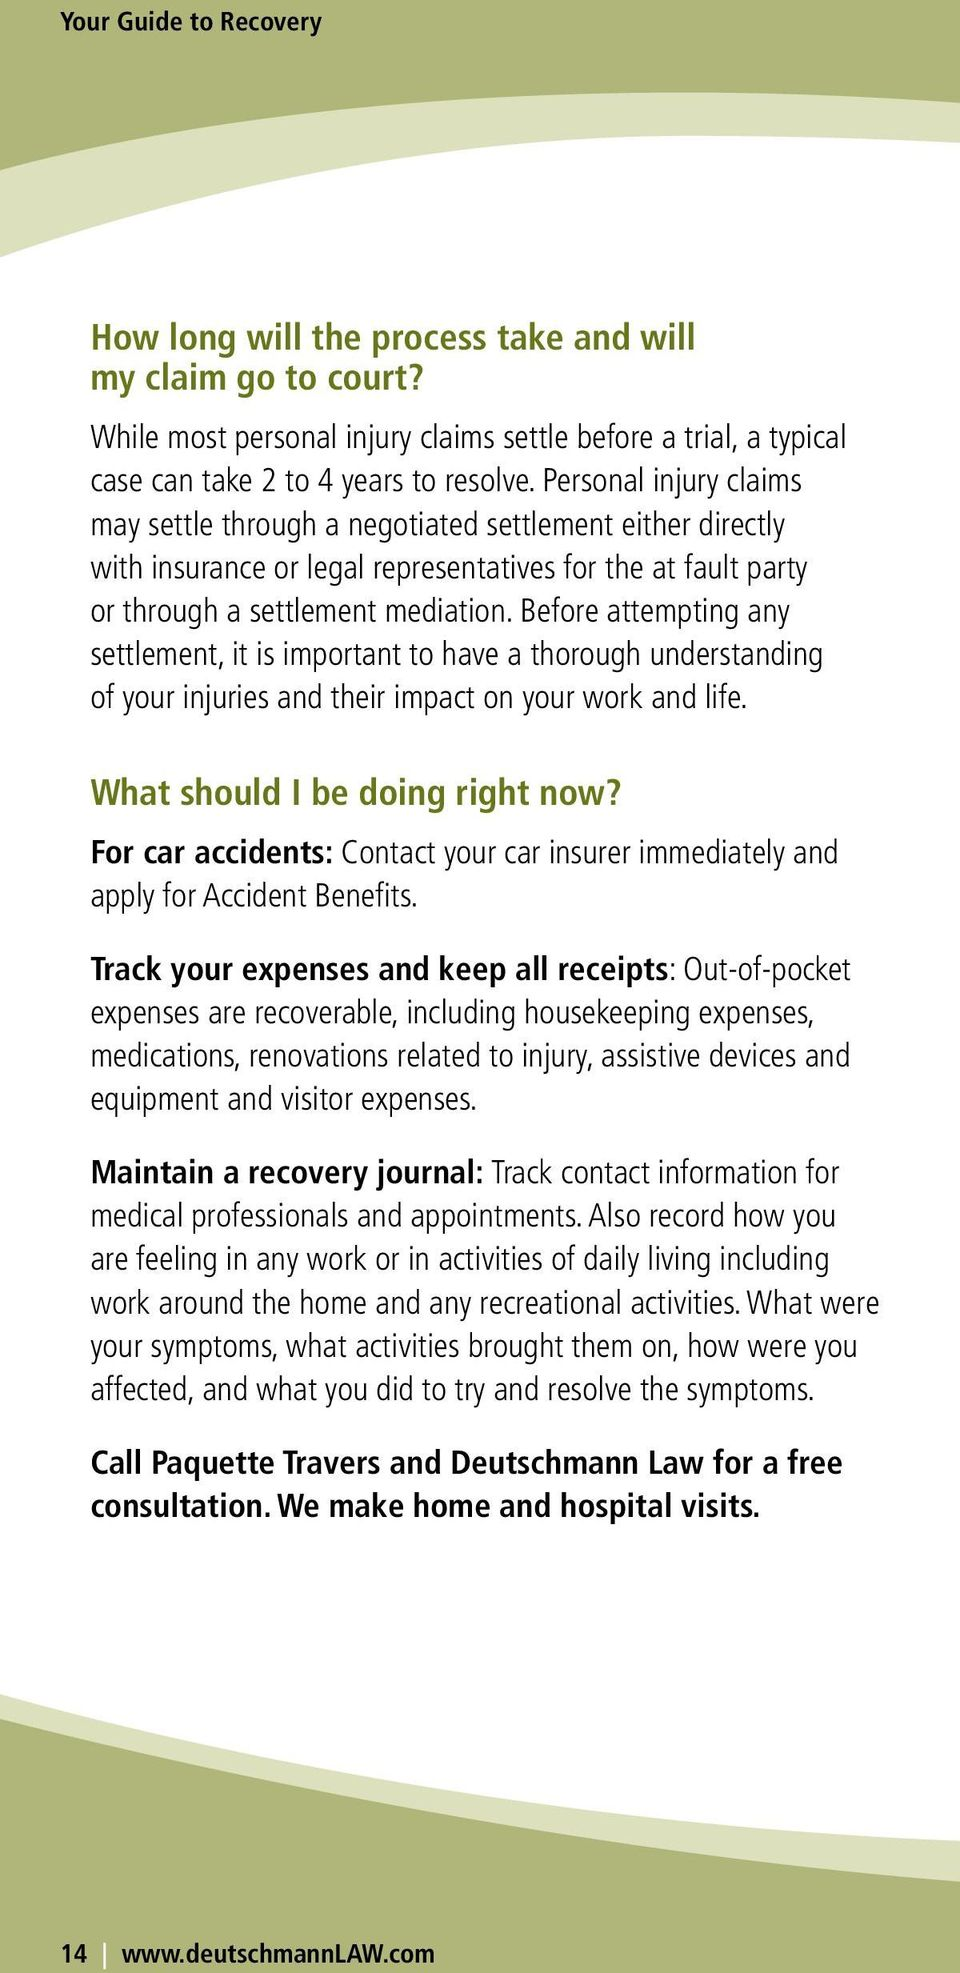 Before attempting any settlement, it is important to have a thorough understanding of your injuries and their impact on your work and life. What should I be doing right now?